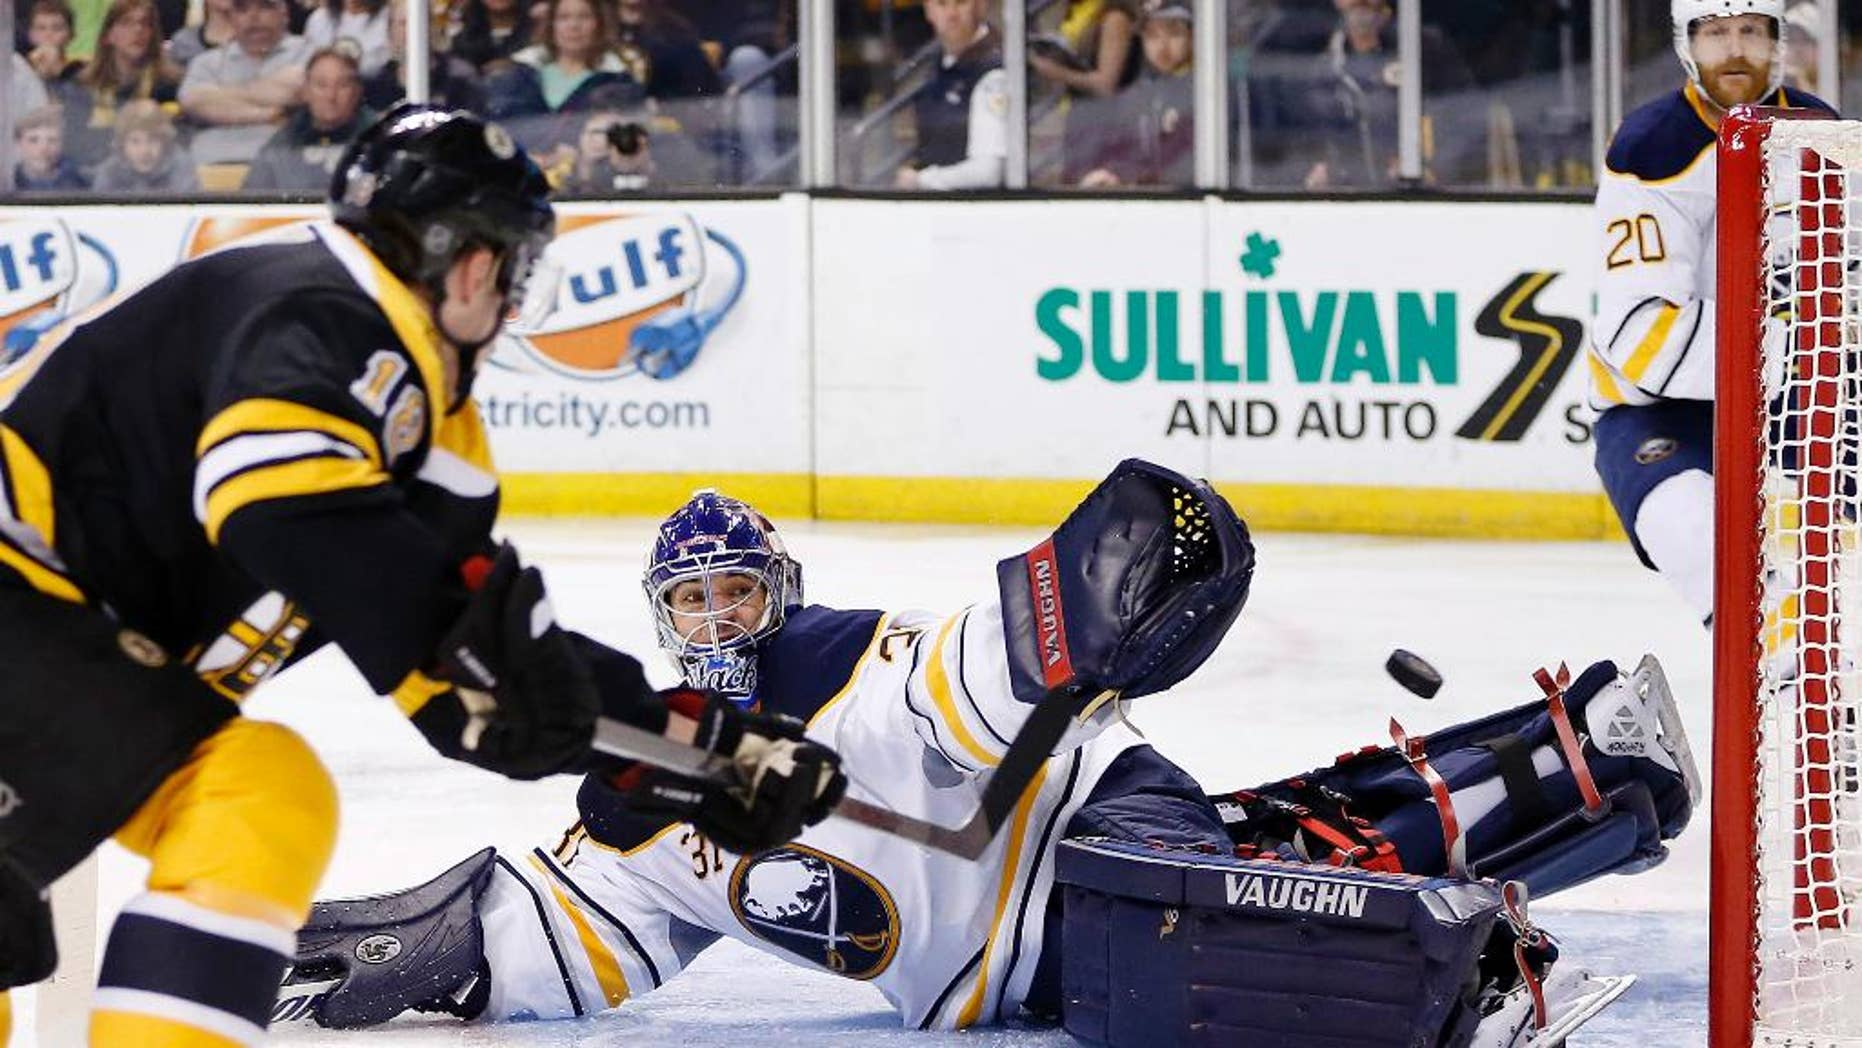 Boston Bruins' Reilly Smith (18) shoots wide of Buffalo Sabres' Matt Hackett (31) during the second period of an NHL hockey game in Boston, Saturday, April 12, 2014. (AP Photo/Michael Dwyer)